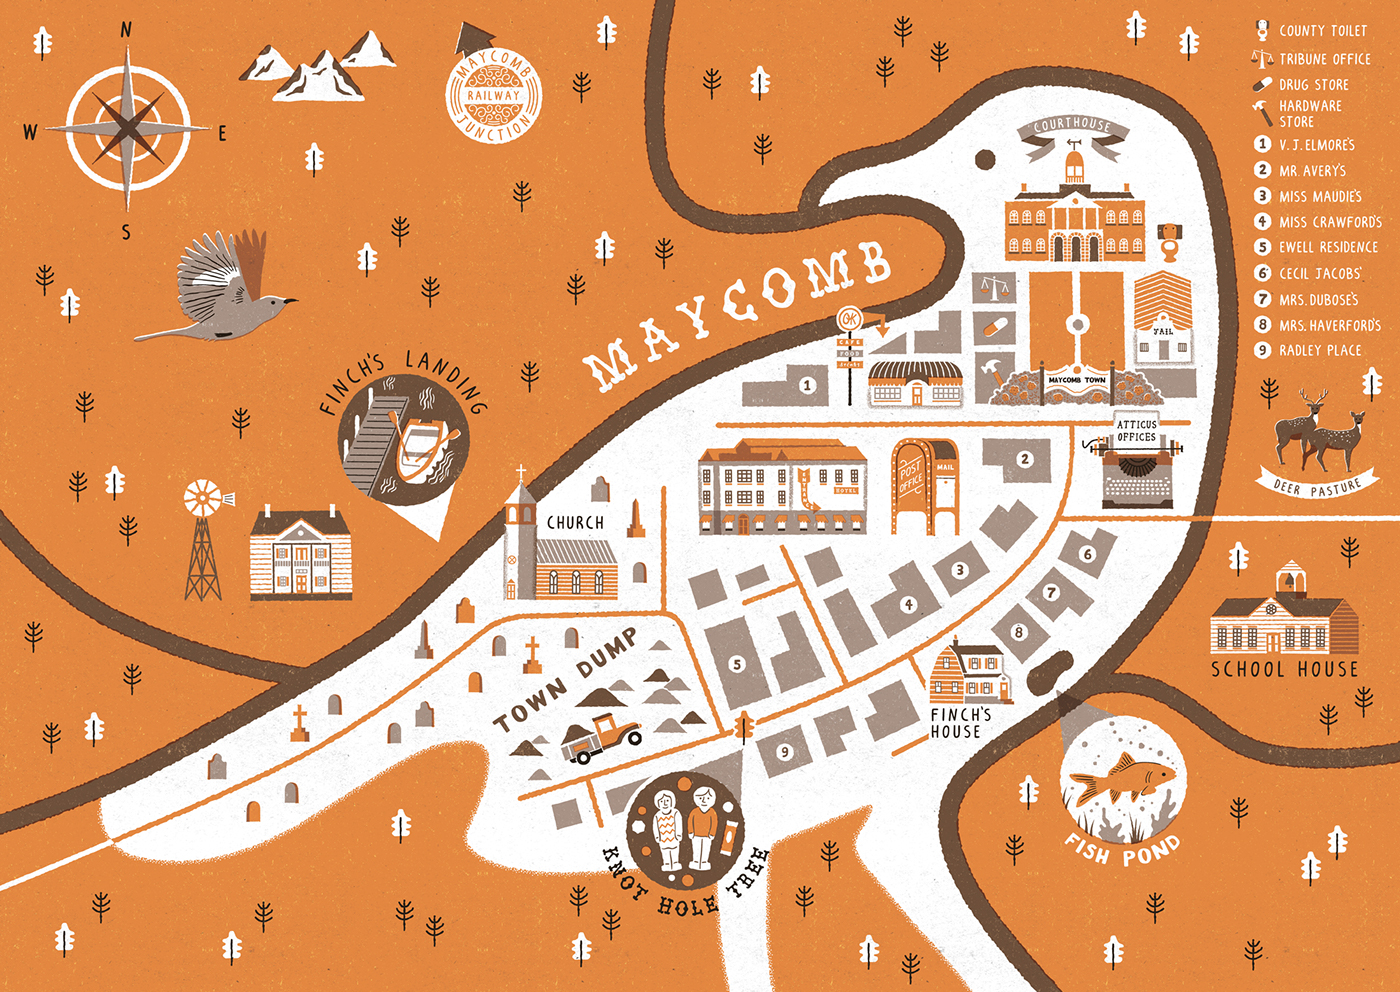 Maycomb Town Map on Behance